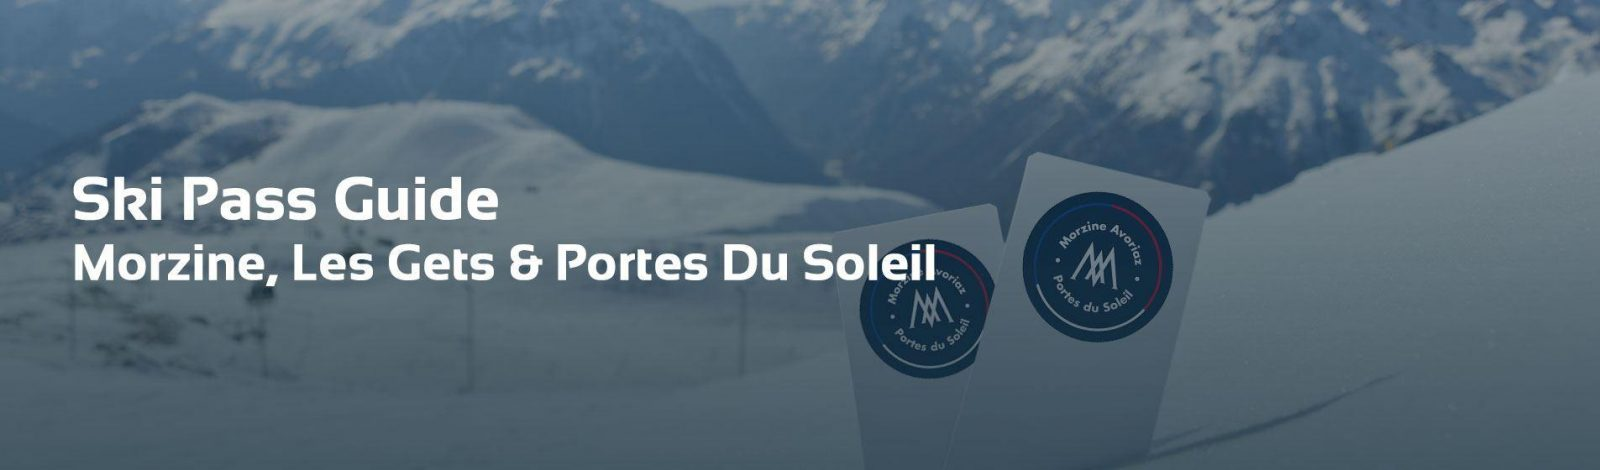 Ski Pass Morzine Header